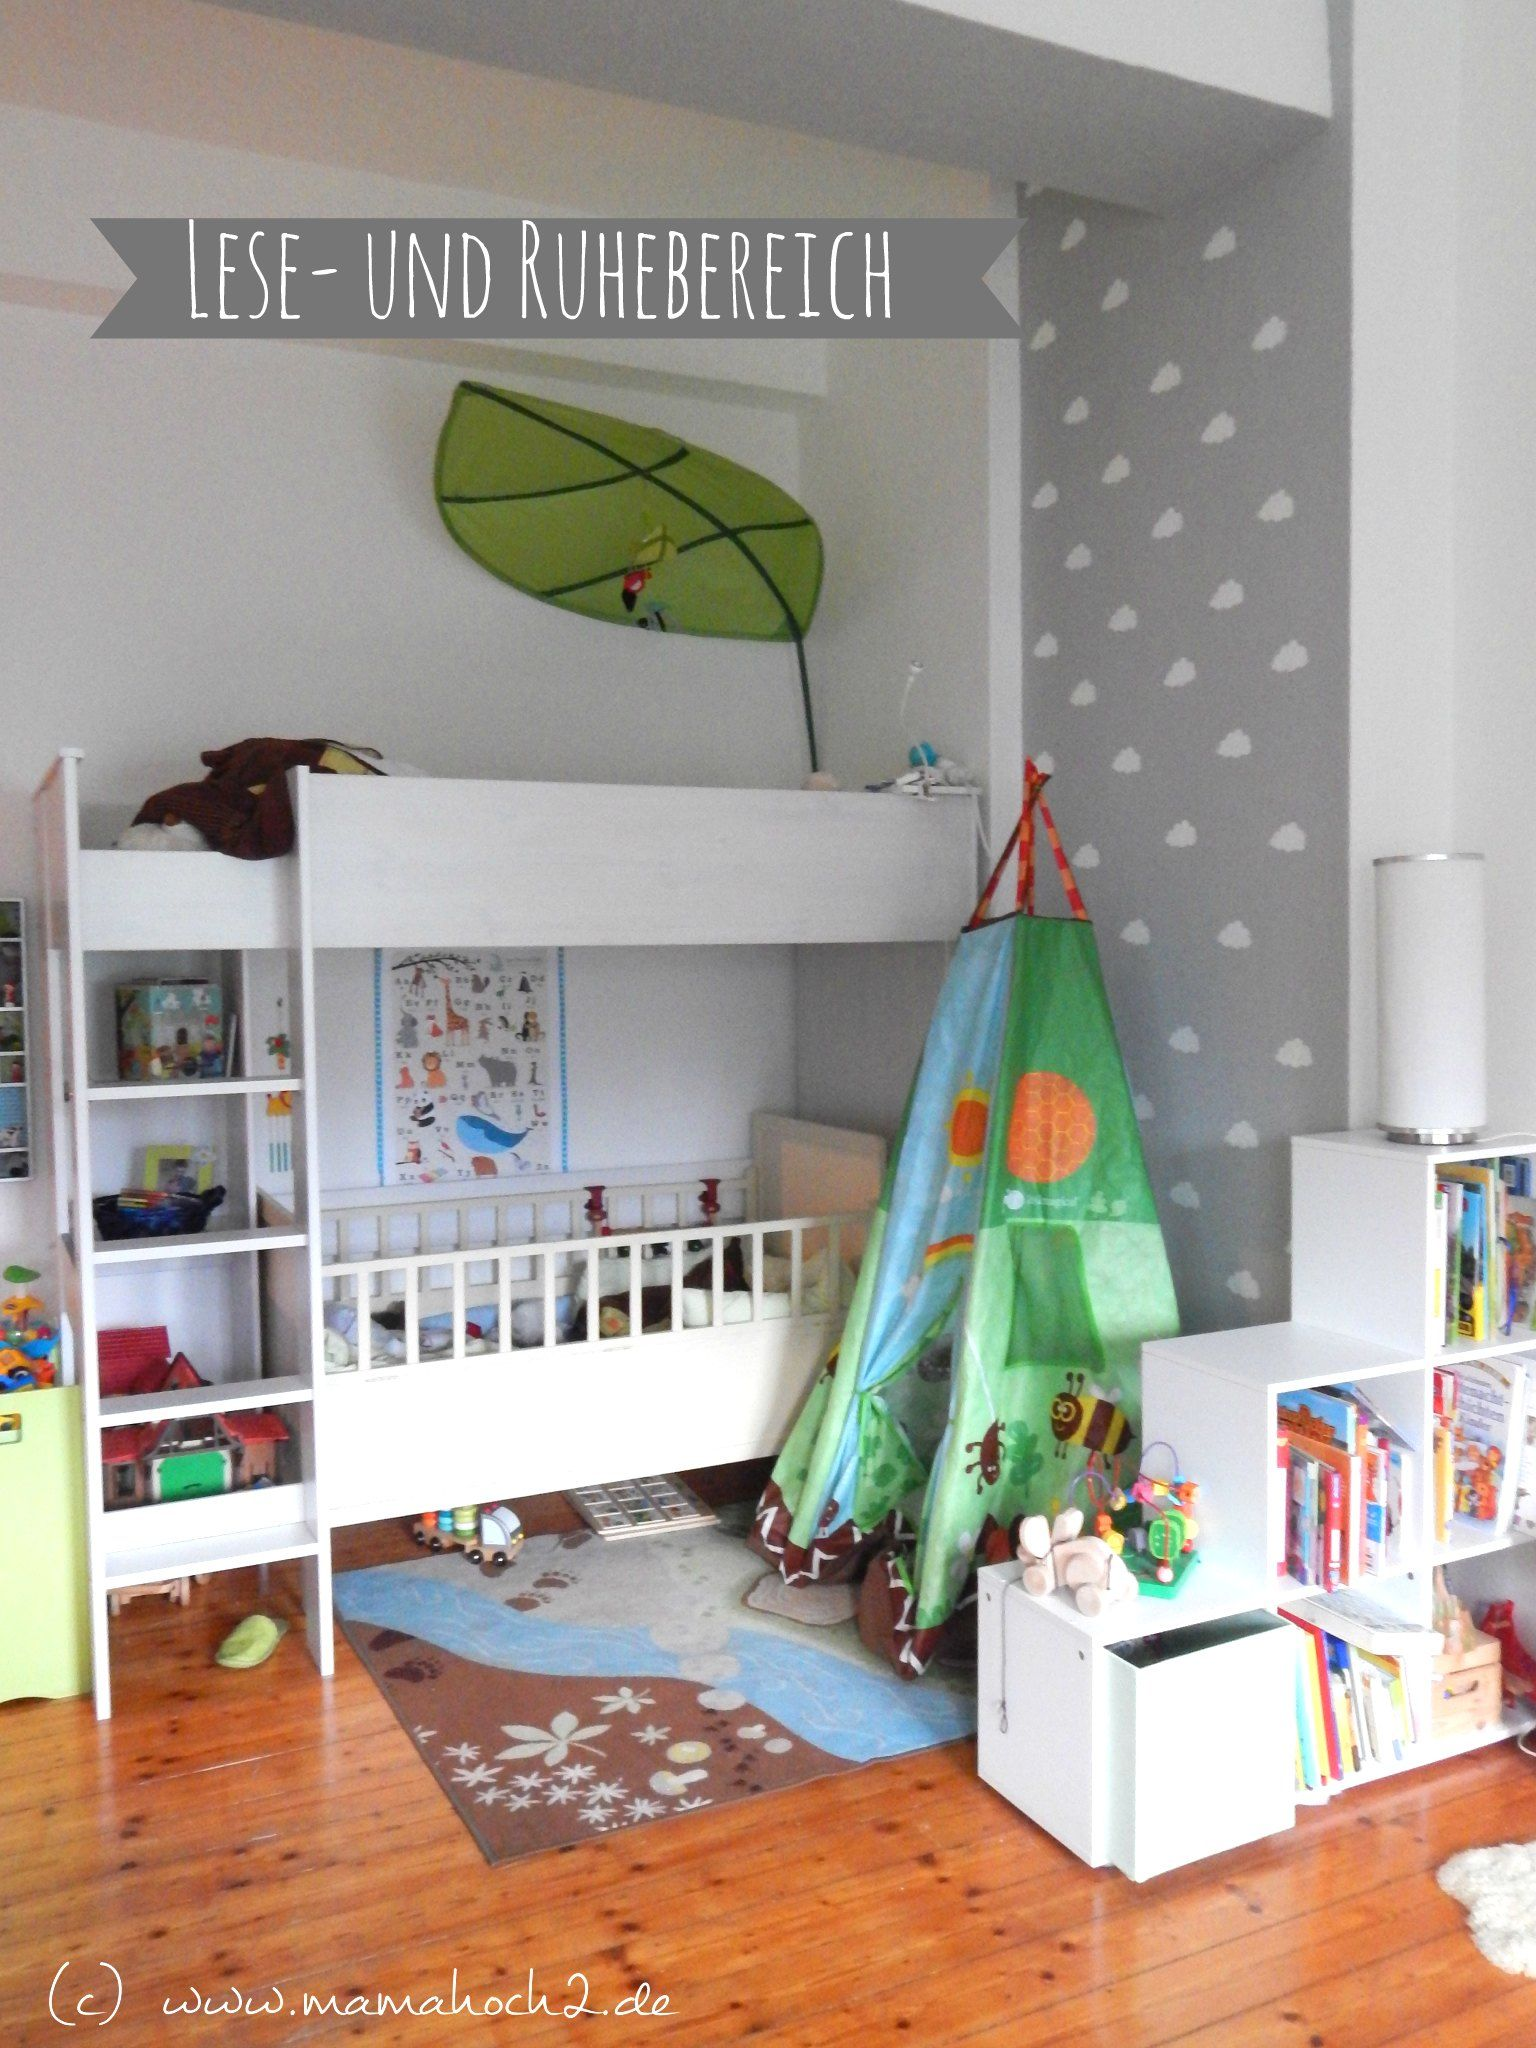 kinderzimmer f r zwei lausebengel kinderzimmerideen kids rooms room and kidsroom. Black Bedroom Furniture Sets. Home Design Ideas